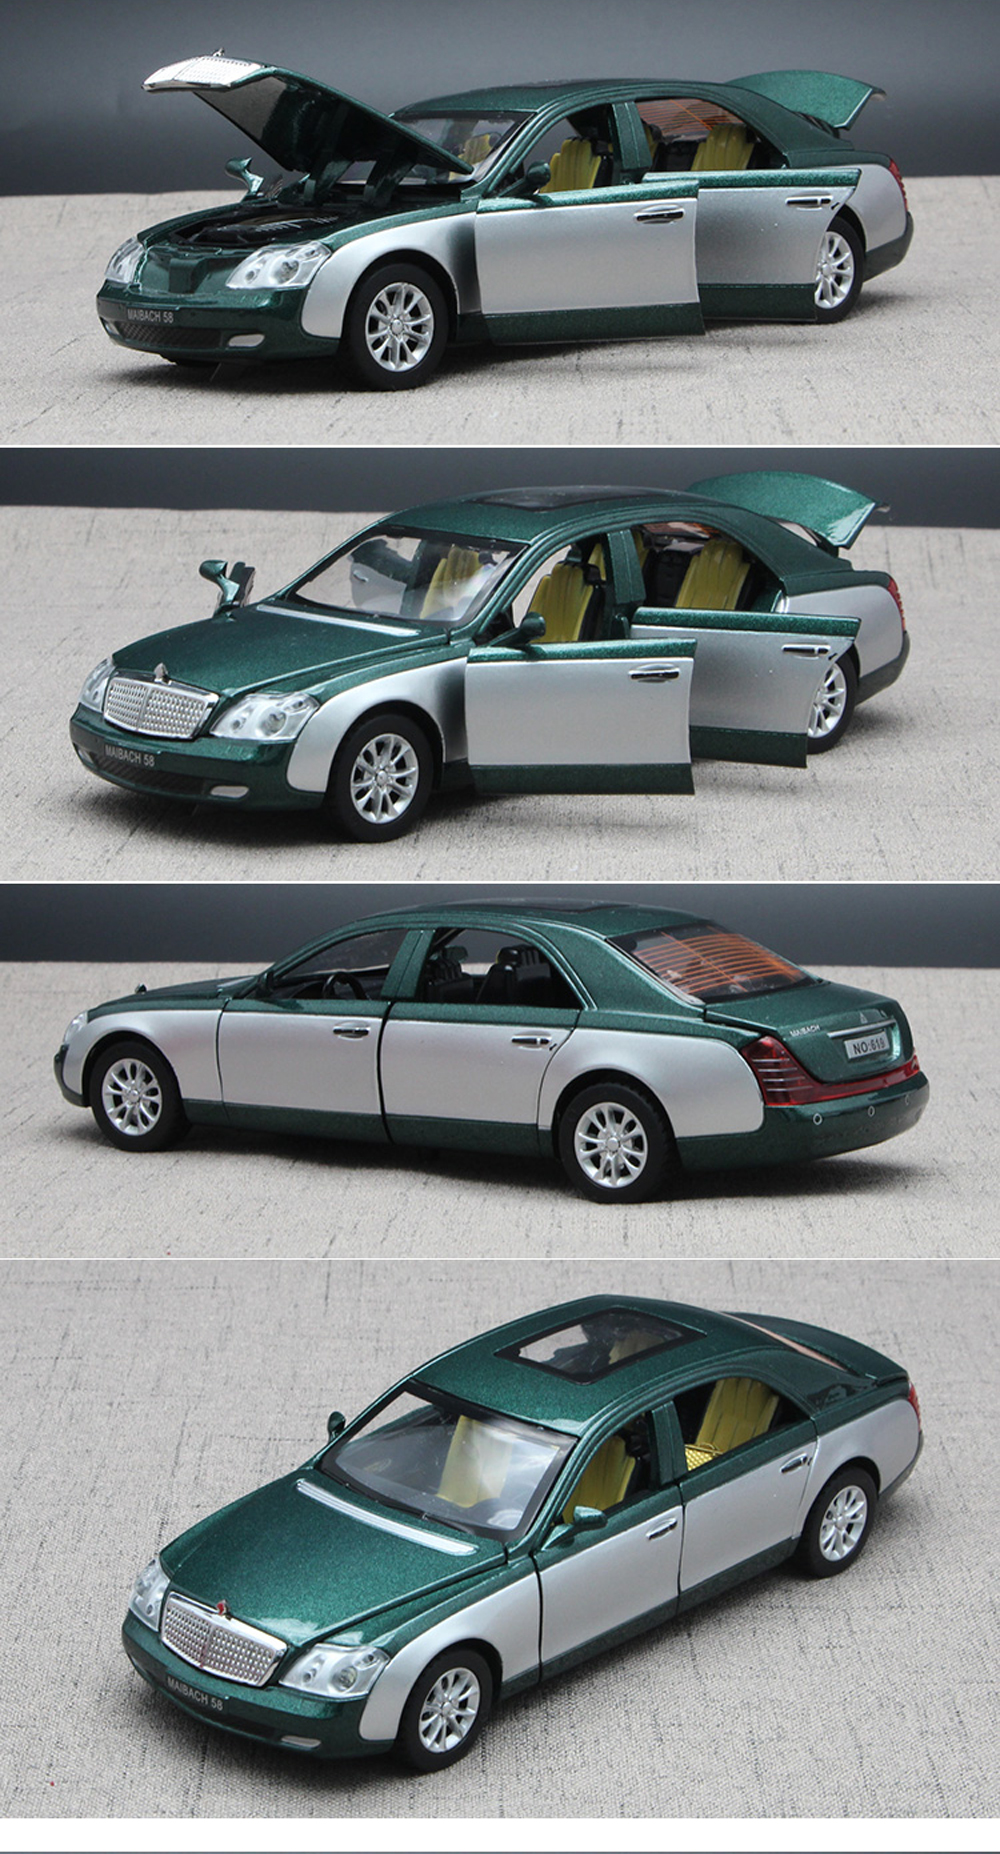 diecast-maybach-model-car-replica-TOy-car_05_03